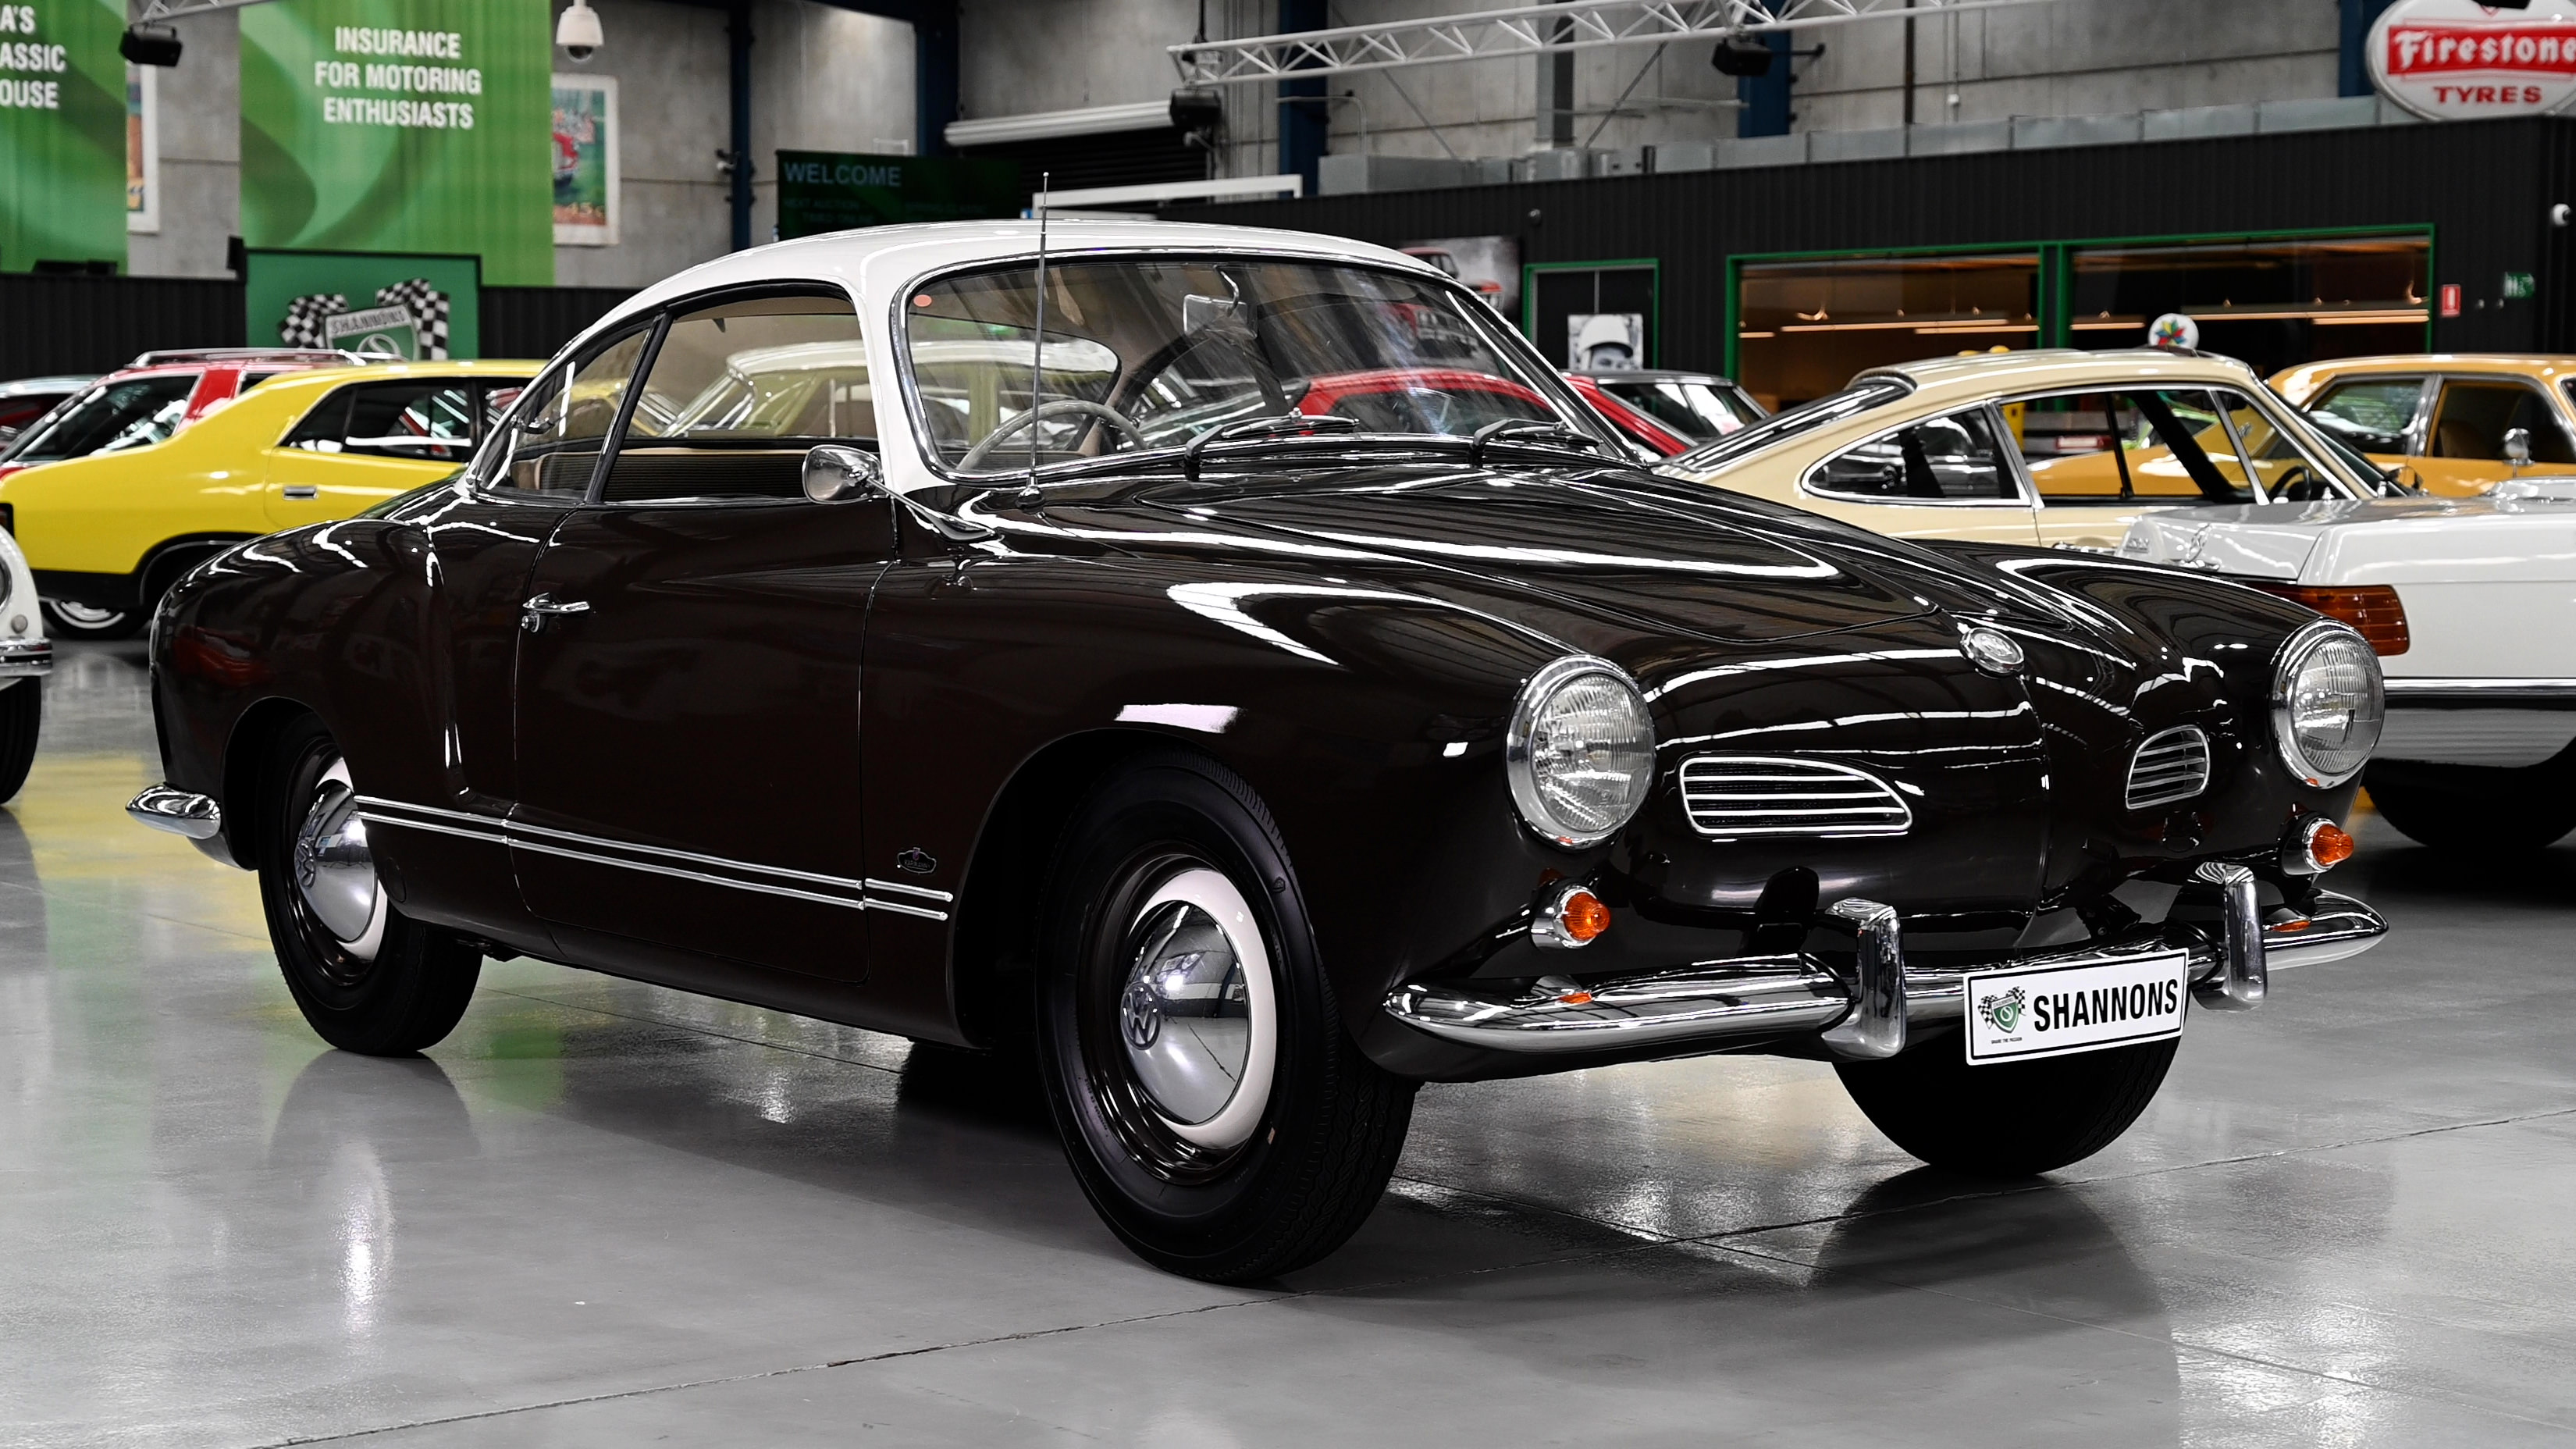 1962 Volkswagen Karmann Ghia Type 1 Coupe - 2021 Shannons Spring Timed Online Auction